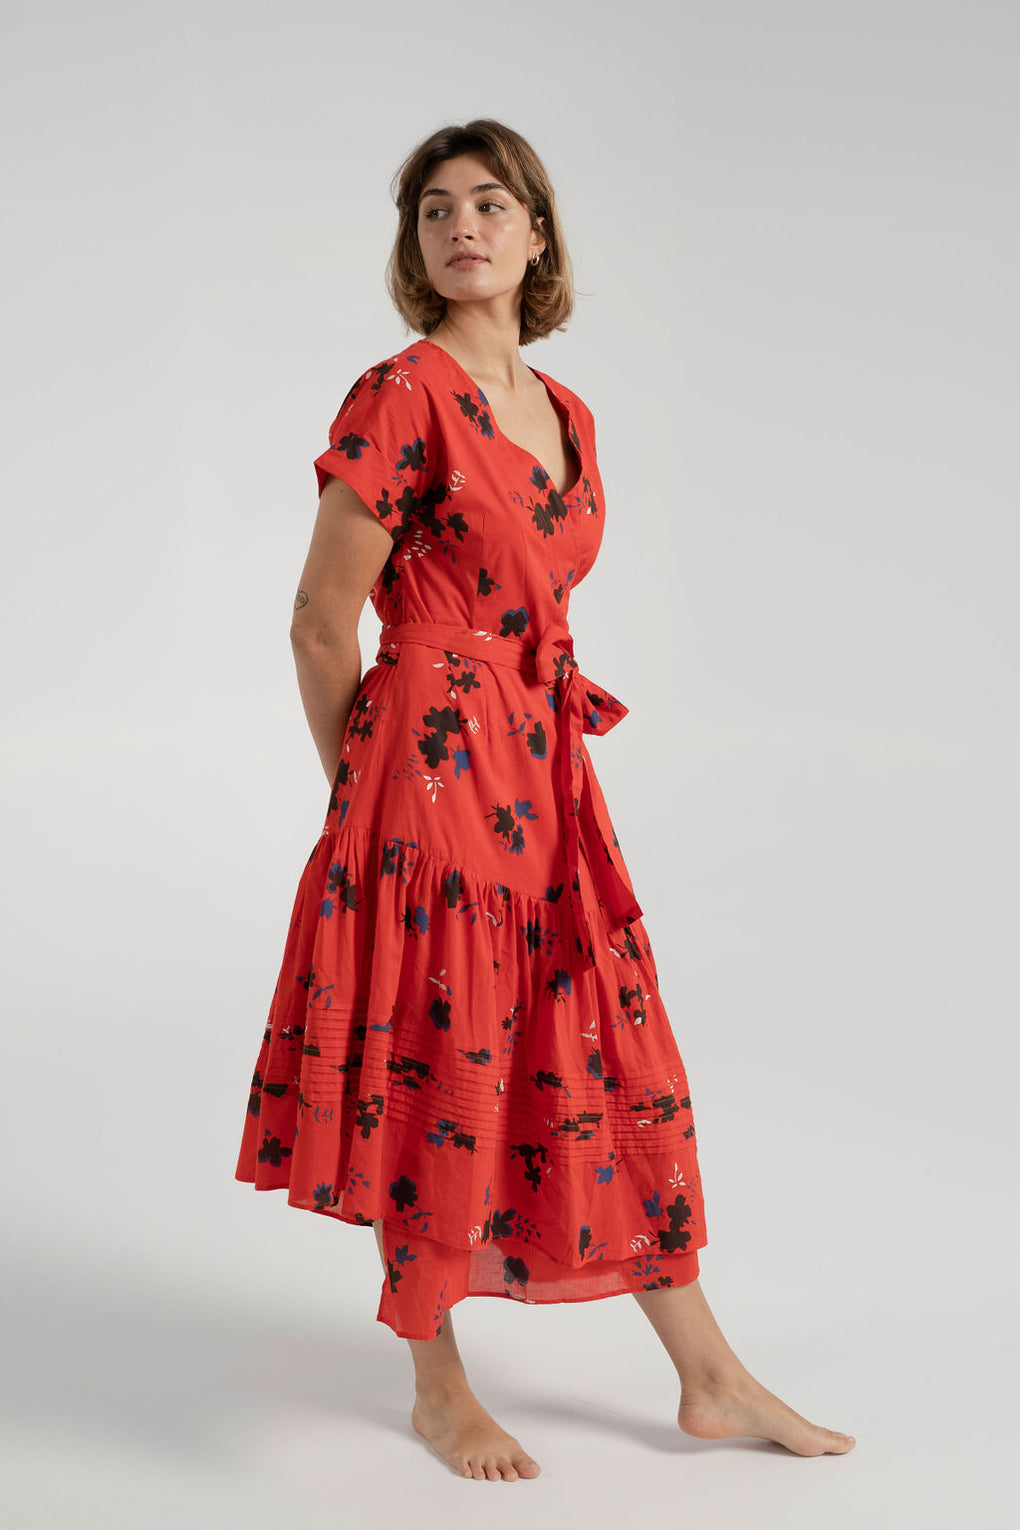 Apiece Apart-Amaro Wrap Dress-red wrap dress-apiece apart dress-Idun-St. Paul